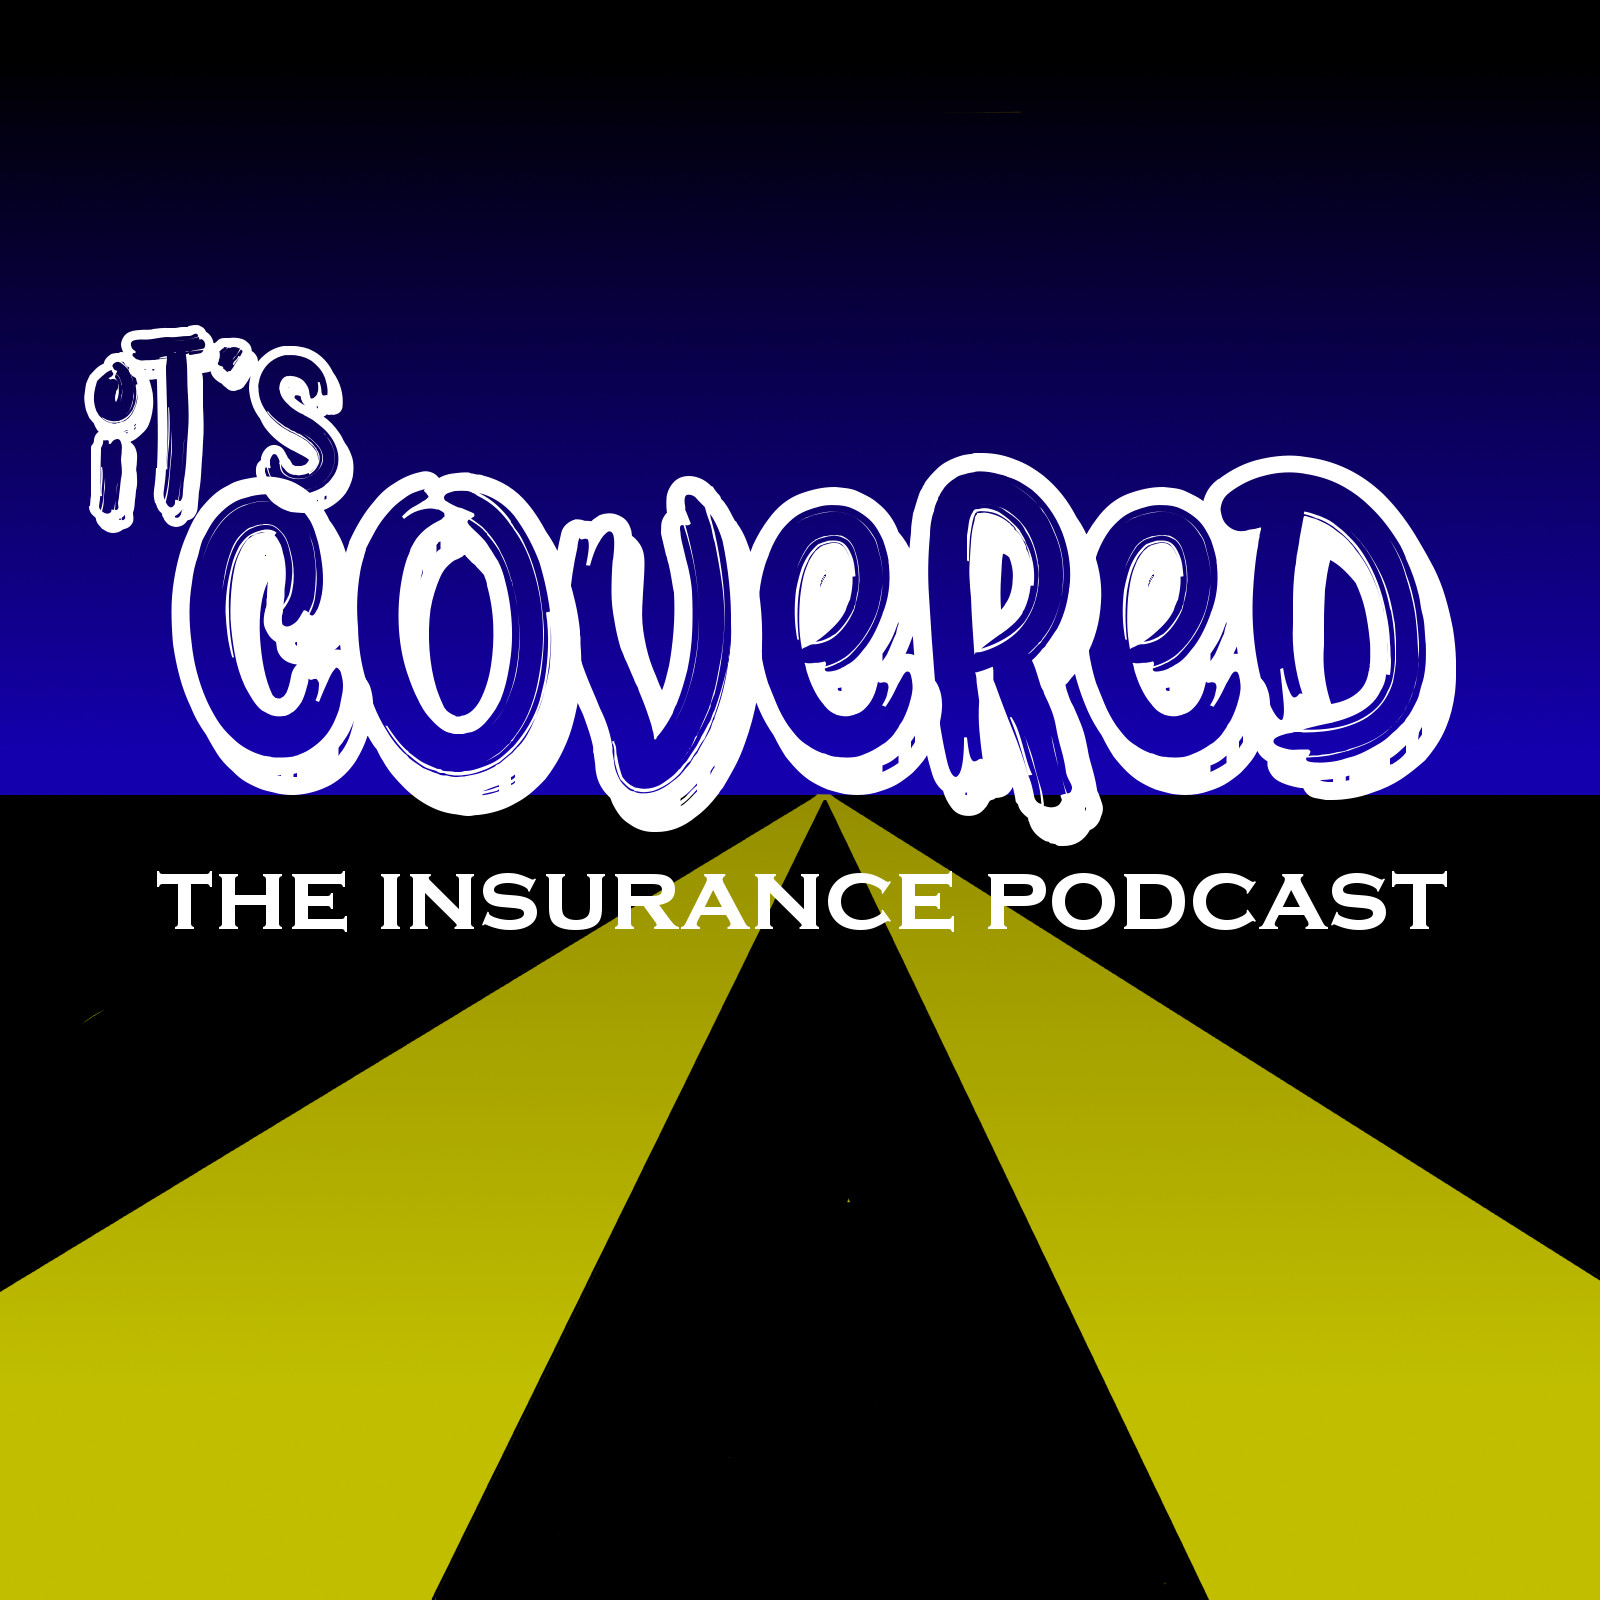 It's Covered: The Insurance Podcast show image